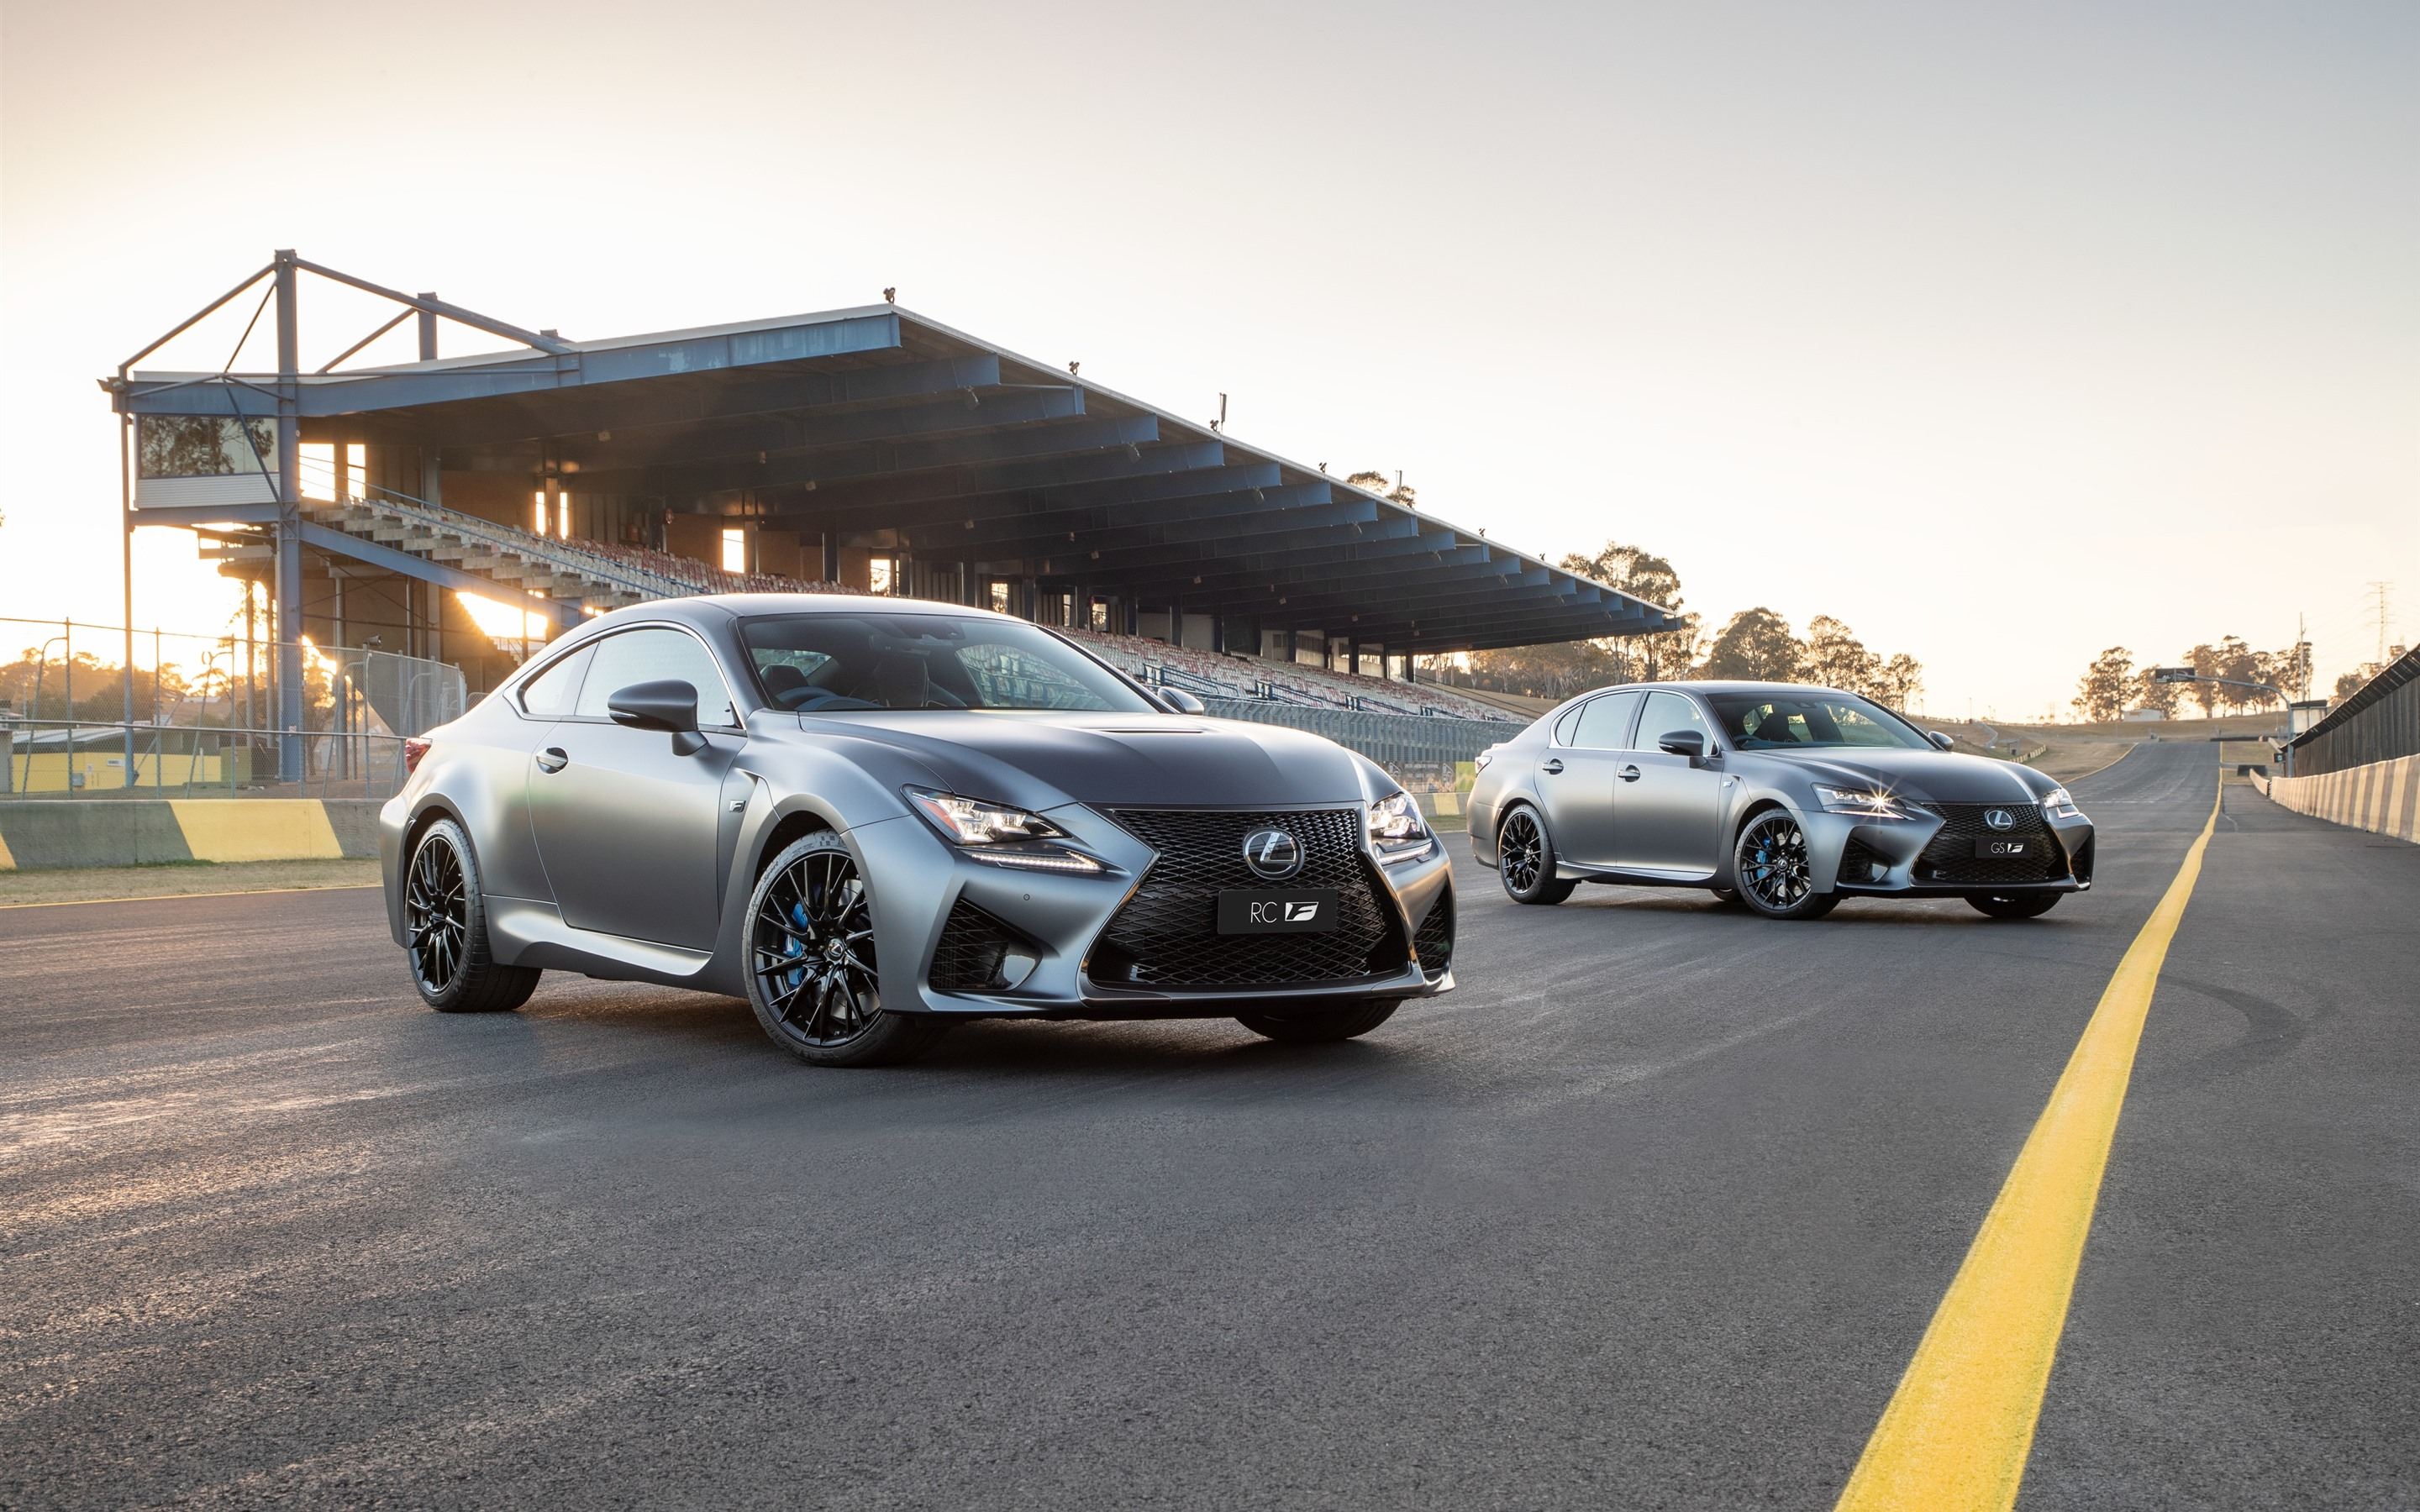 Wallpaper Lexus Rc And Gs Silver Cars 2880x1800 Hd Picture Image